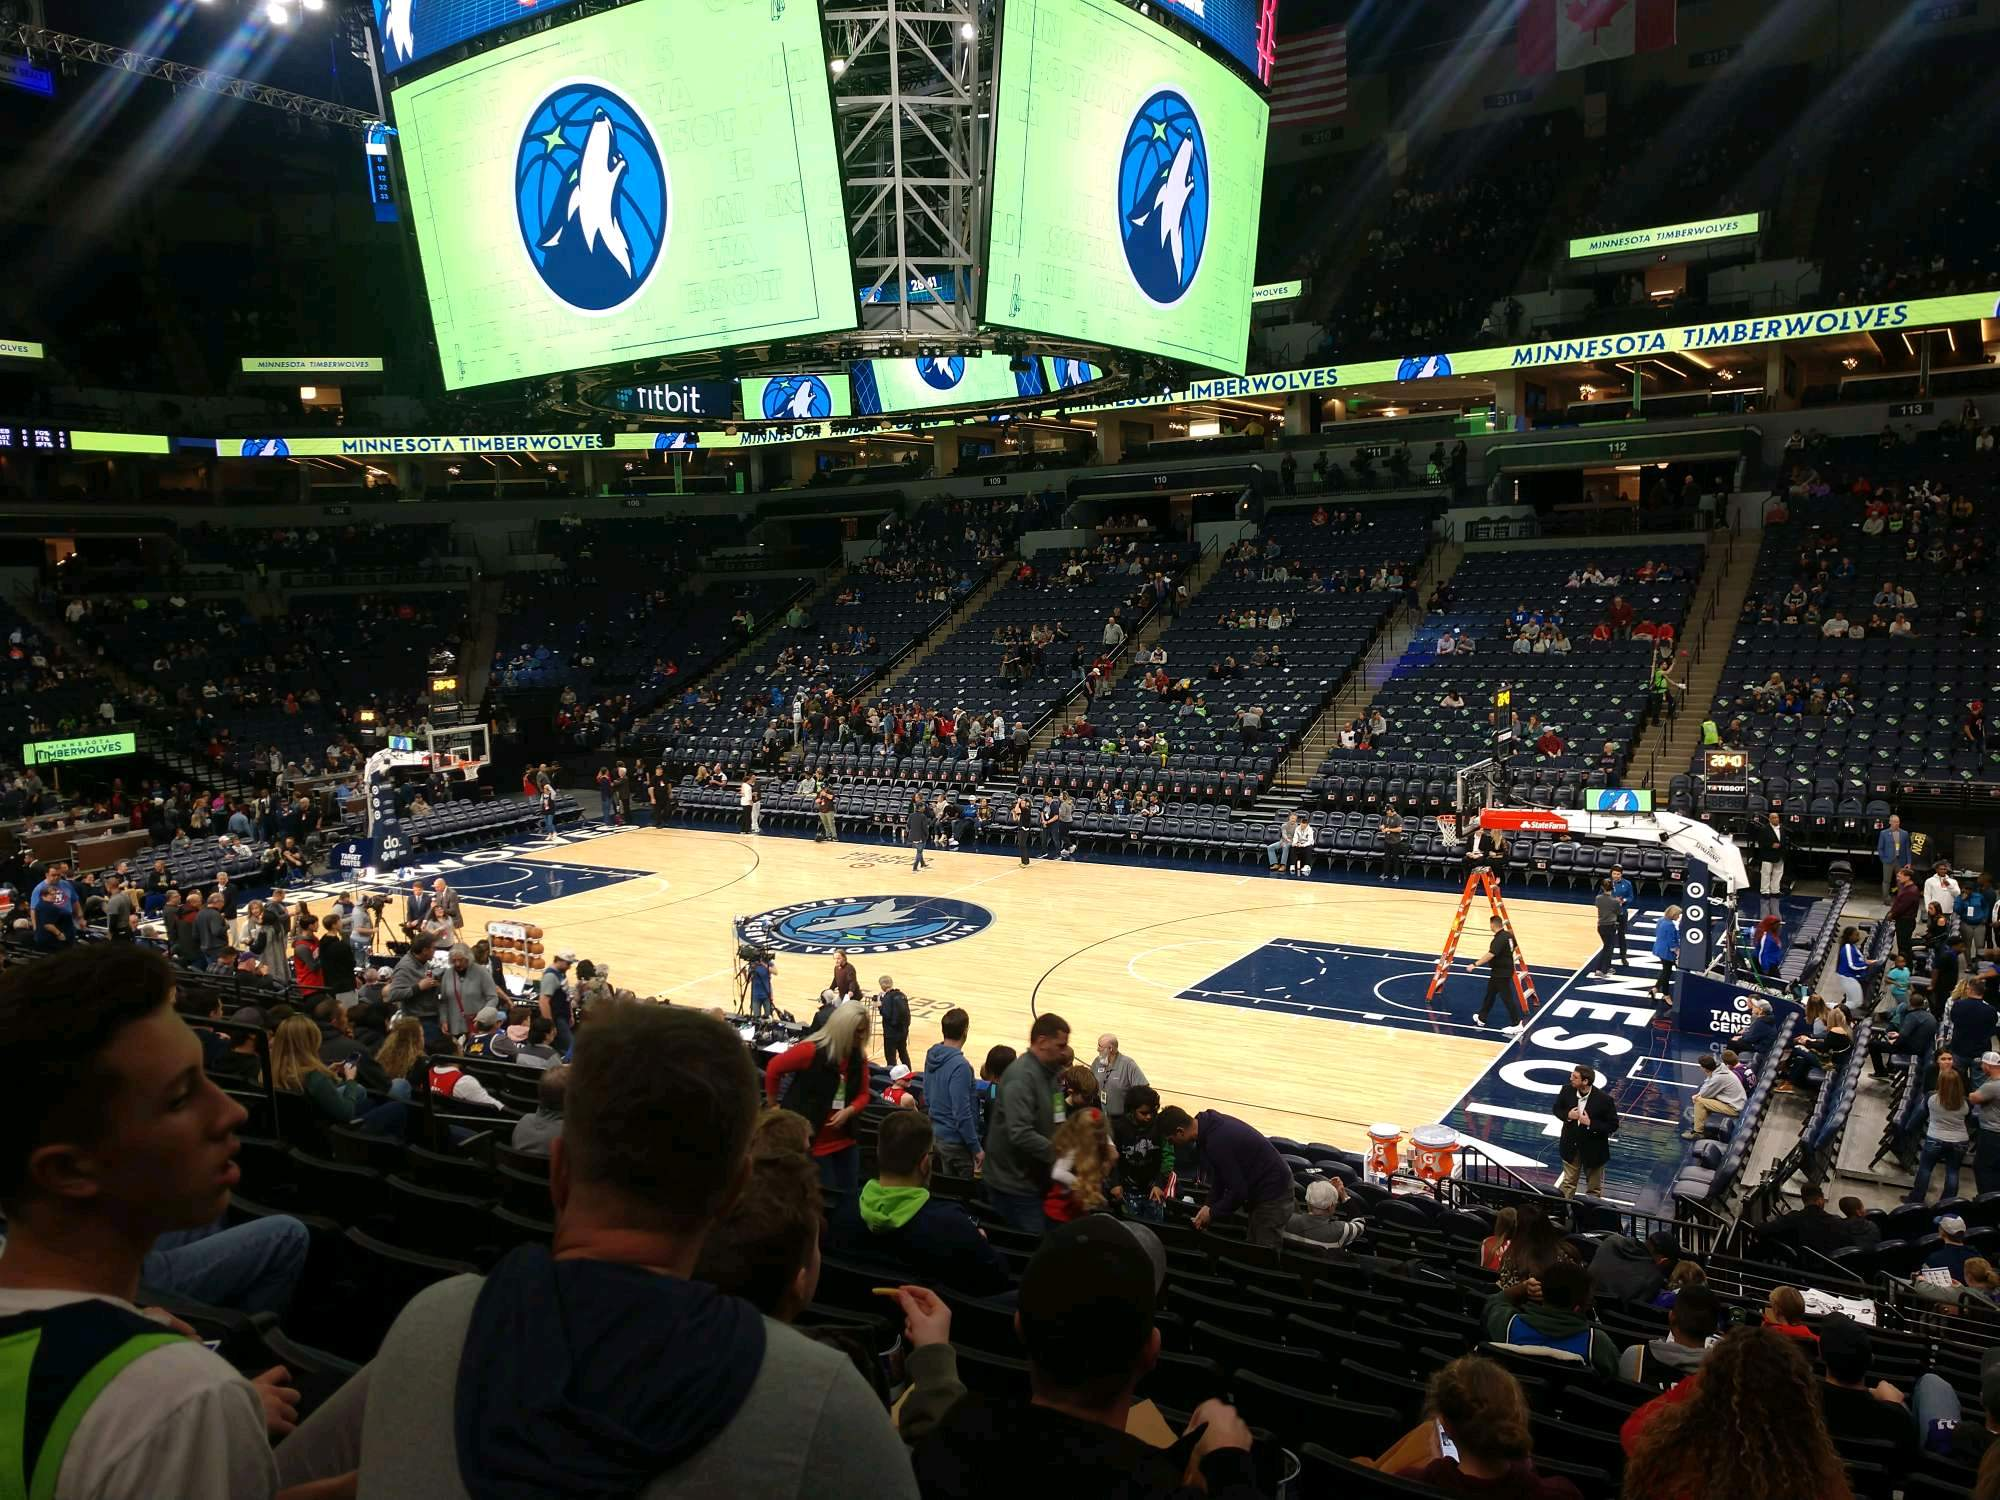 Target Center Section 129 Row Q Seat 3